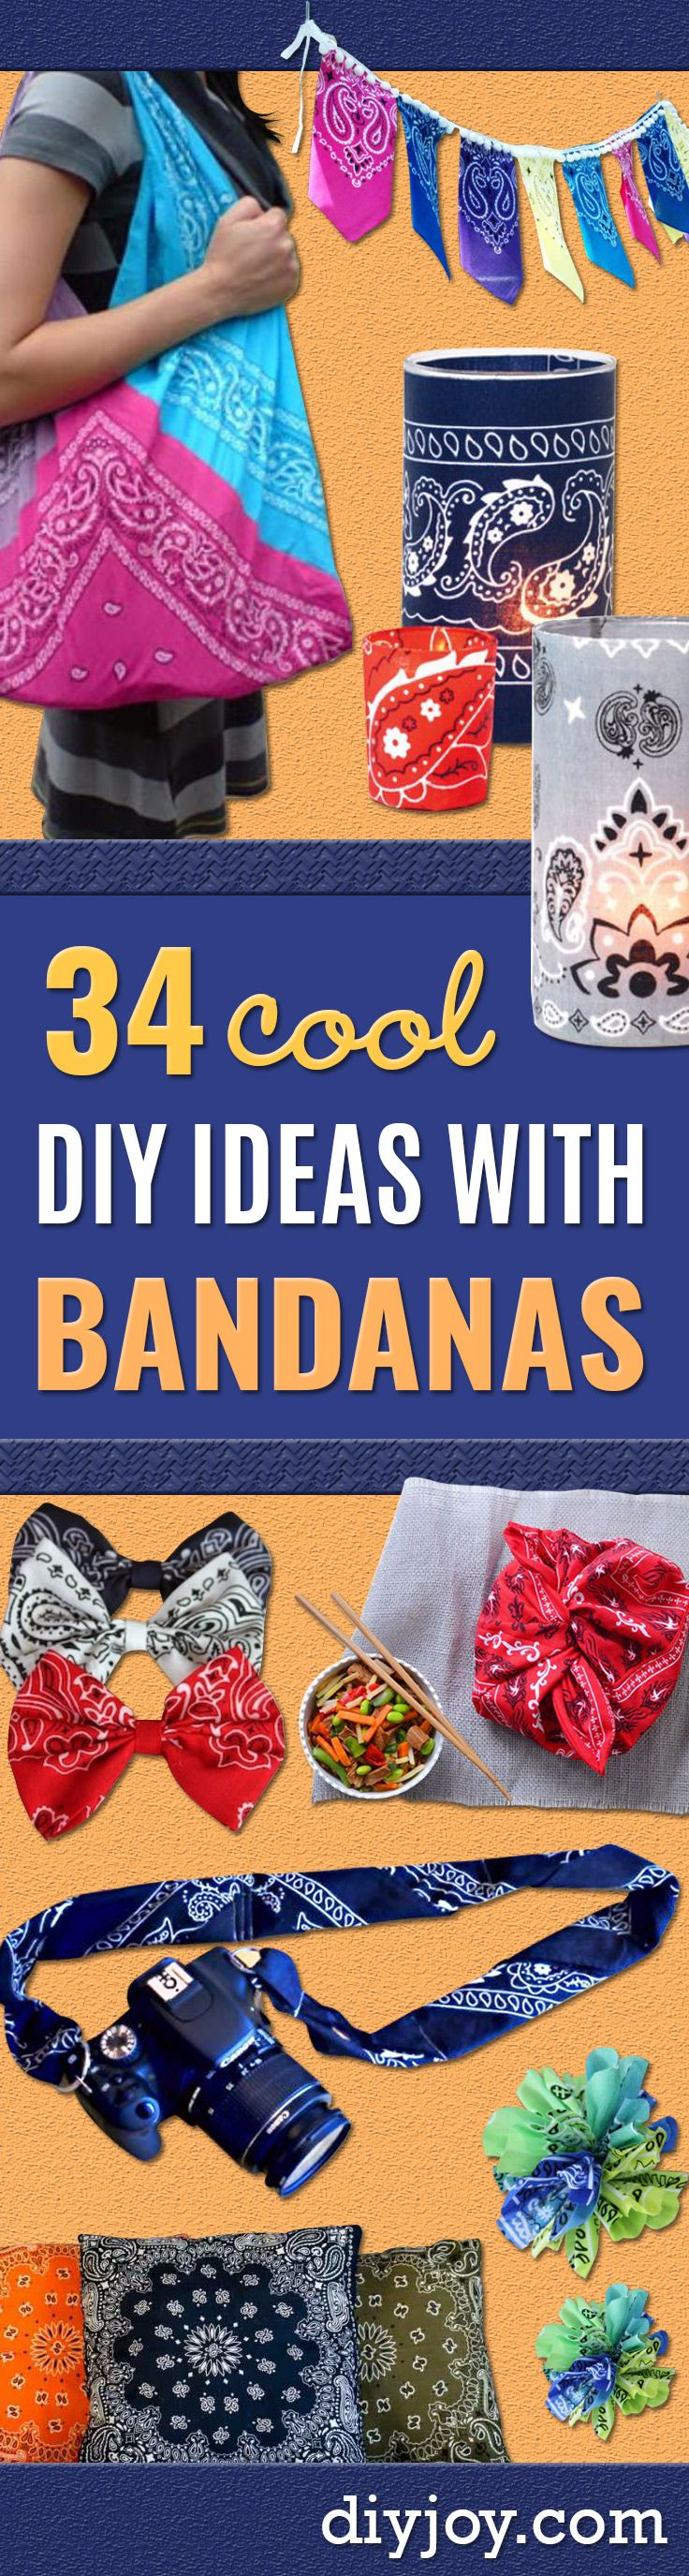 DIY Ideas With Bandanas – Bandana Crafts and Decor Projects Made With A Bandana …